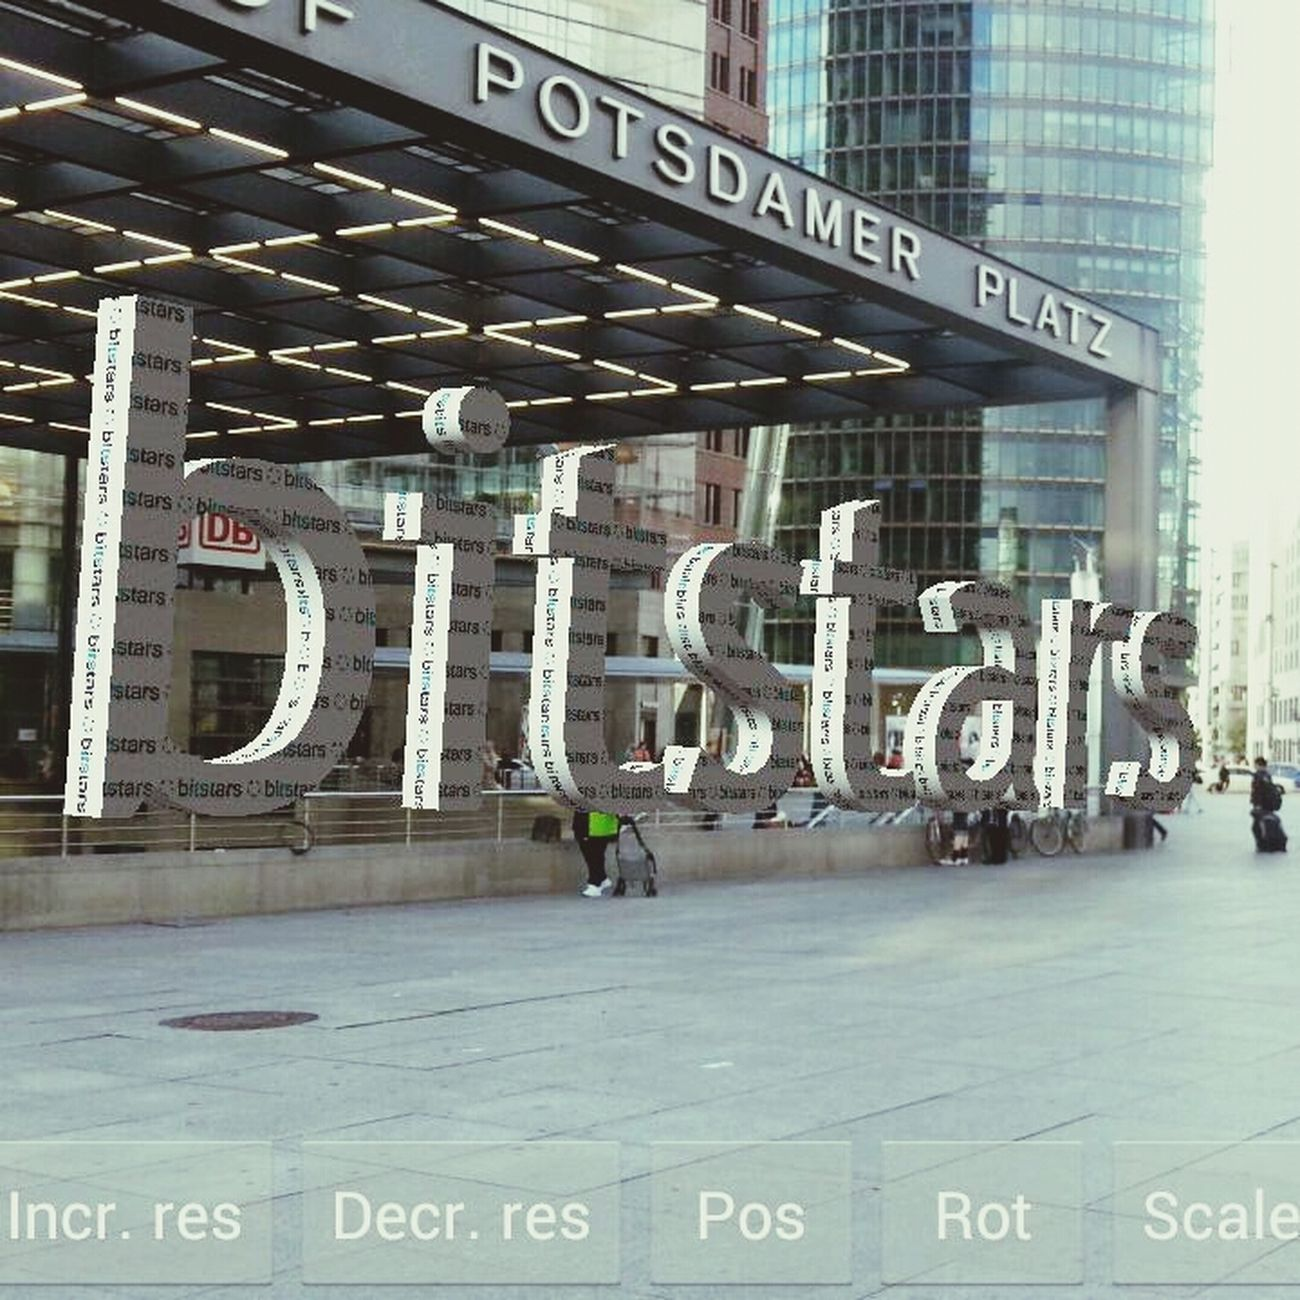 Bitstars Berlin Mtc13 Augmented Reality ar potsdamerplatz